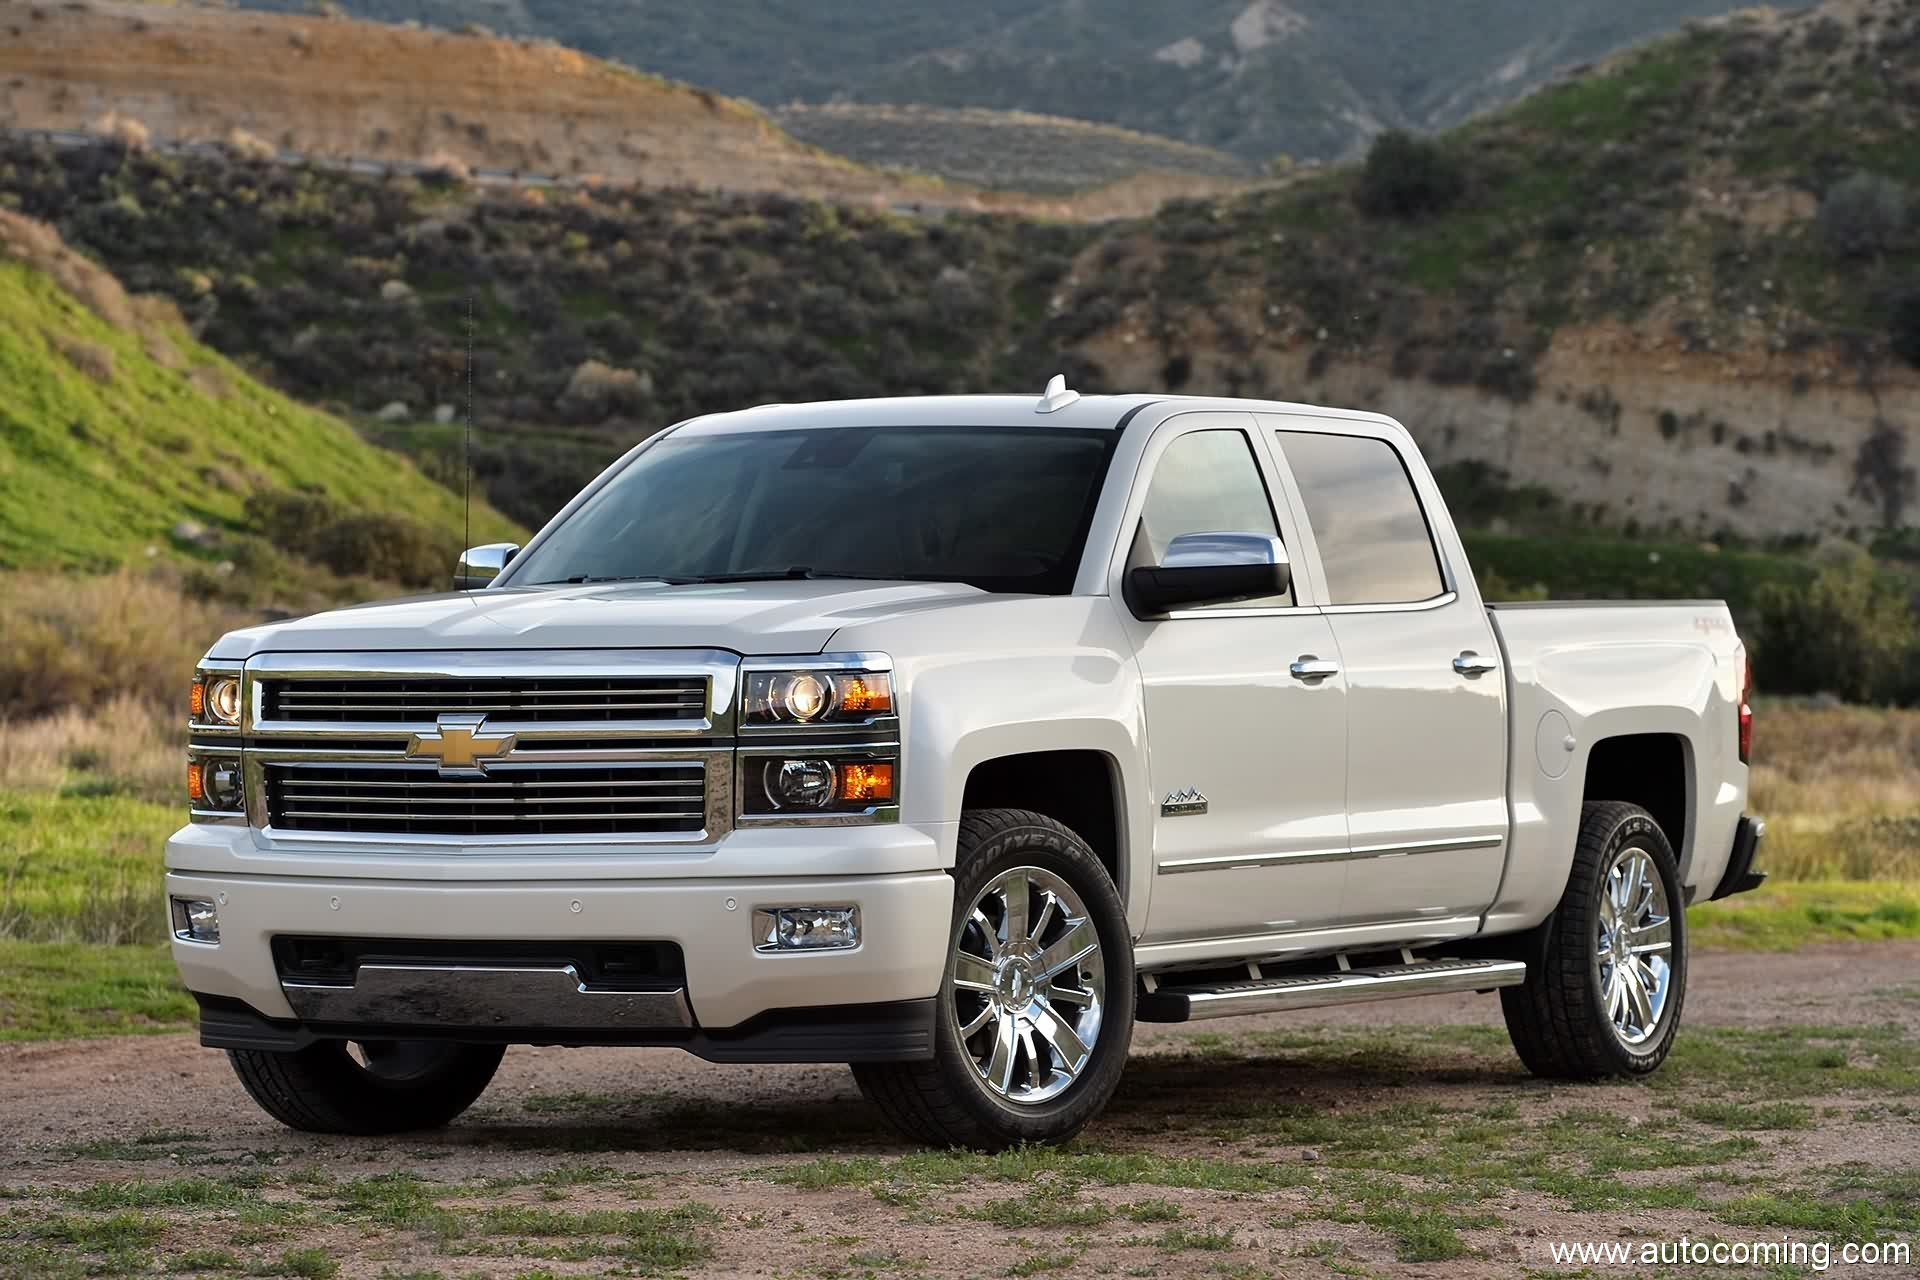 2019 Chevrolet Silverado High Country photo - 1